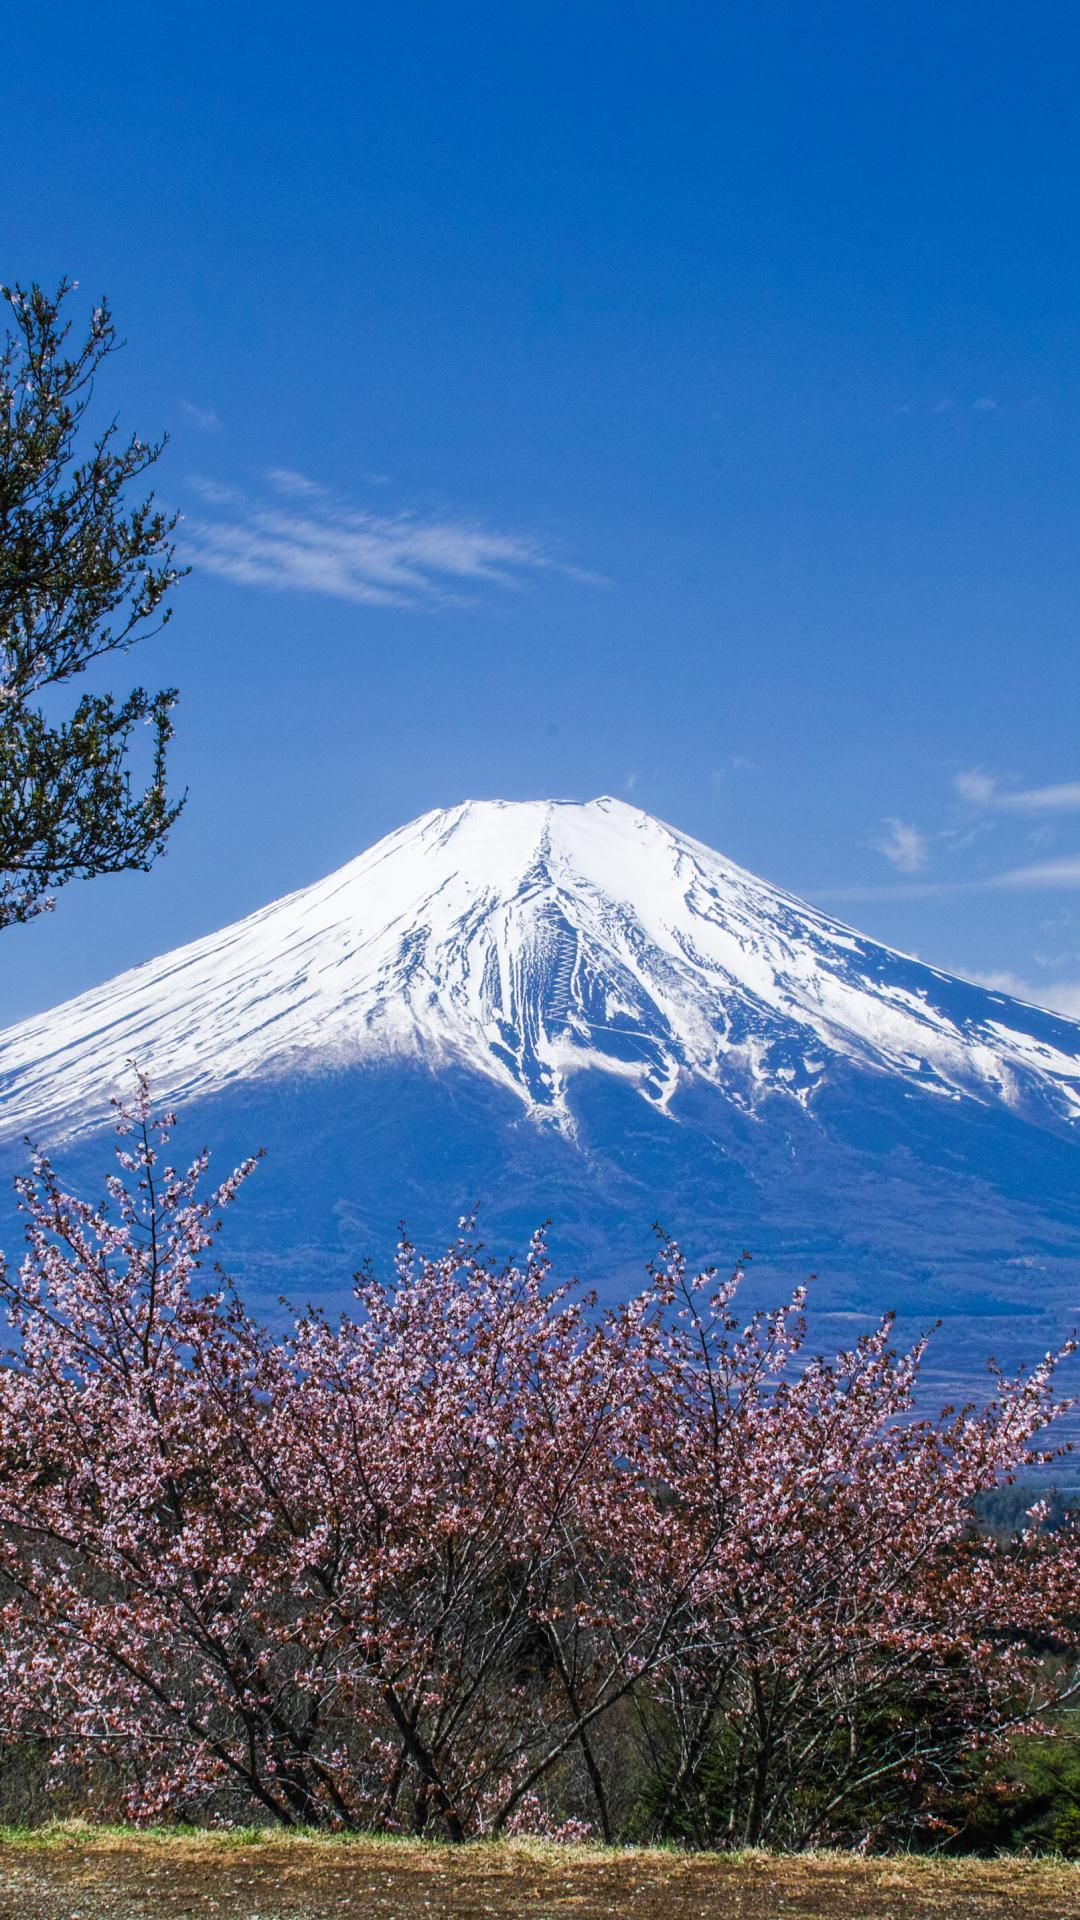 Mount Fuji Wallpaper For Android Apk Download